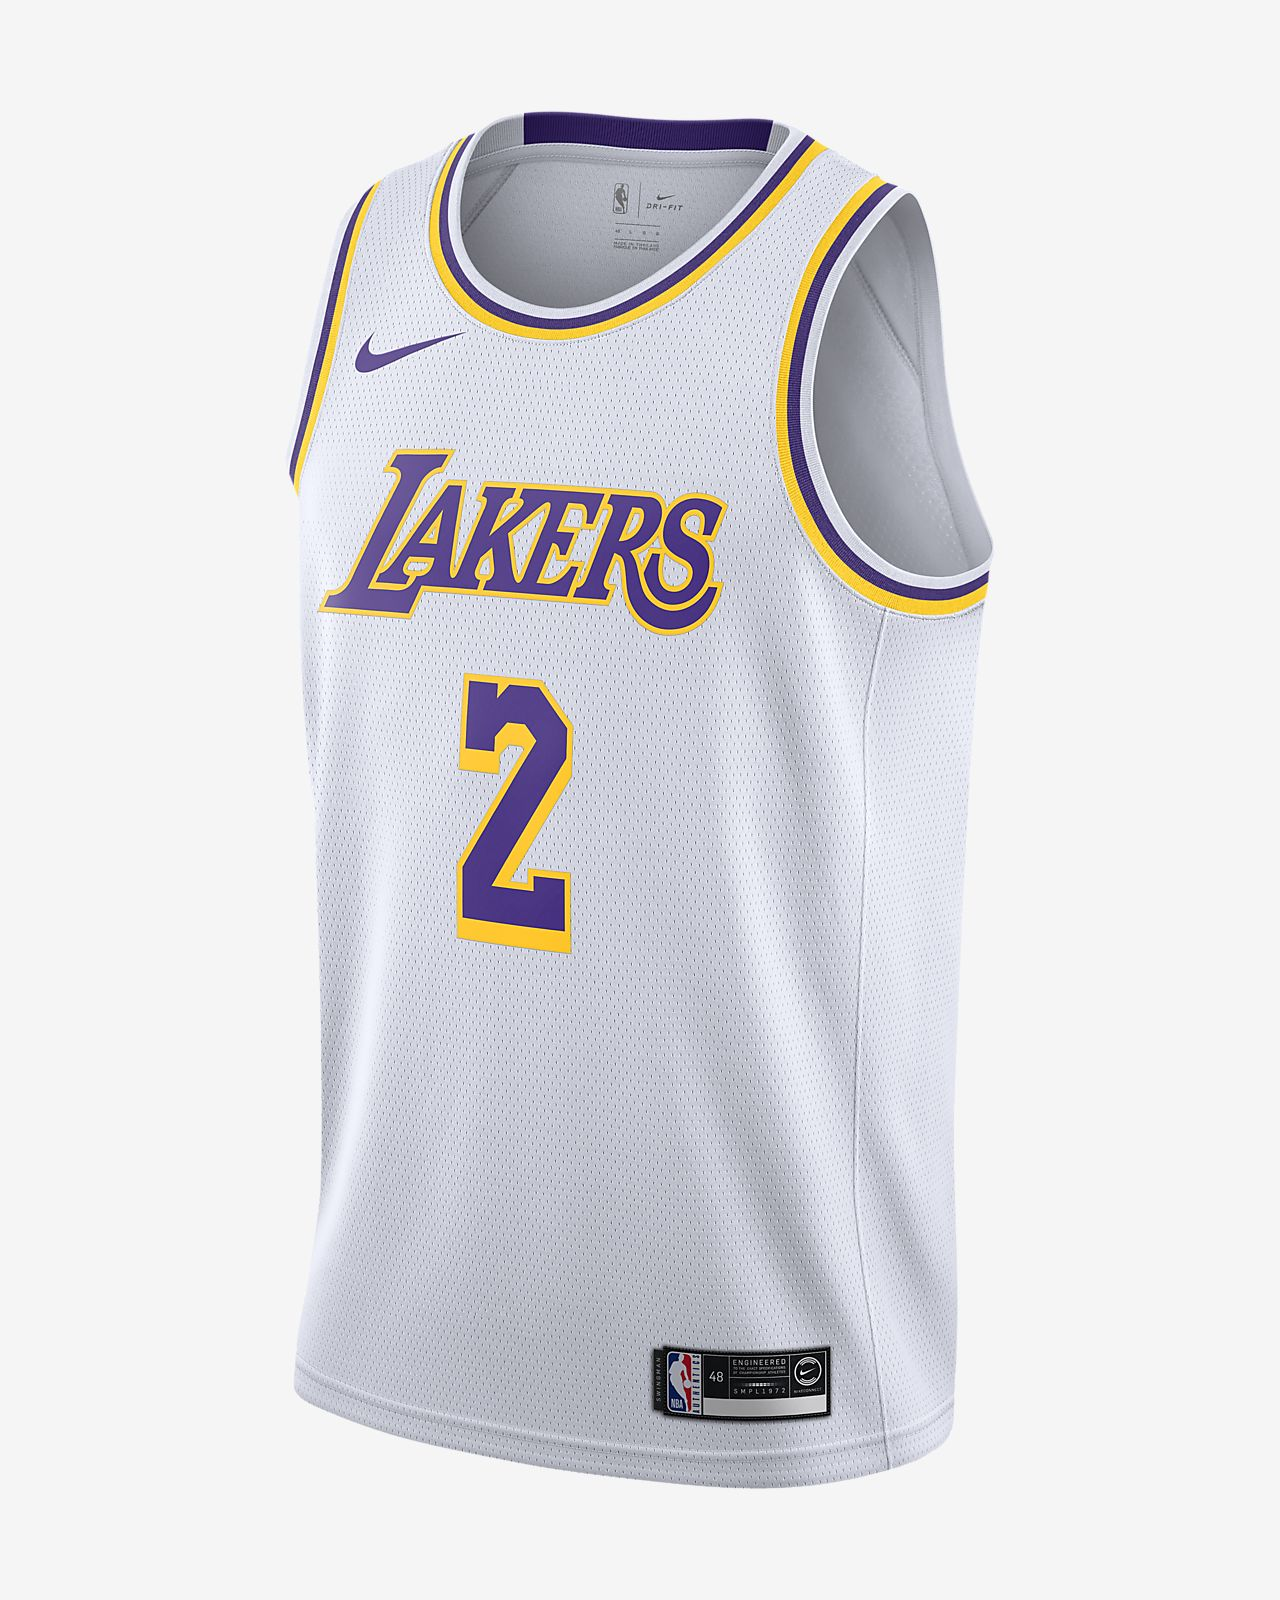 600e48855d1 Men s Nike NBA Connected Jersey. Lonzo Ball Association Edition Swingman (Los  Angeles Lakers)